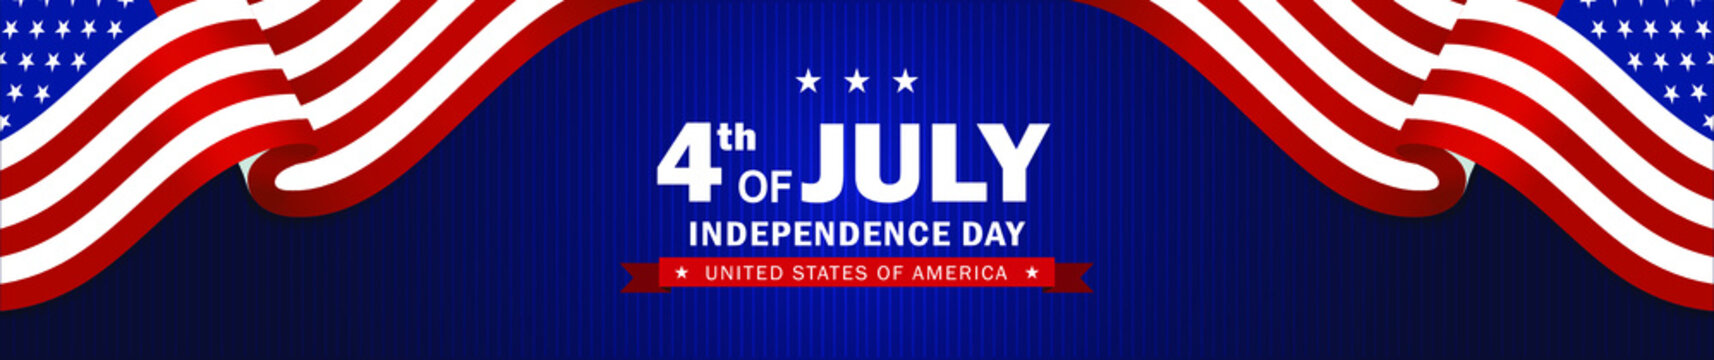 4th of July Independence day background. Perfect for invitations or announcements.